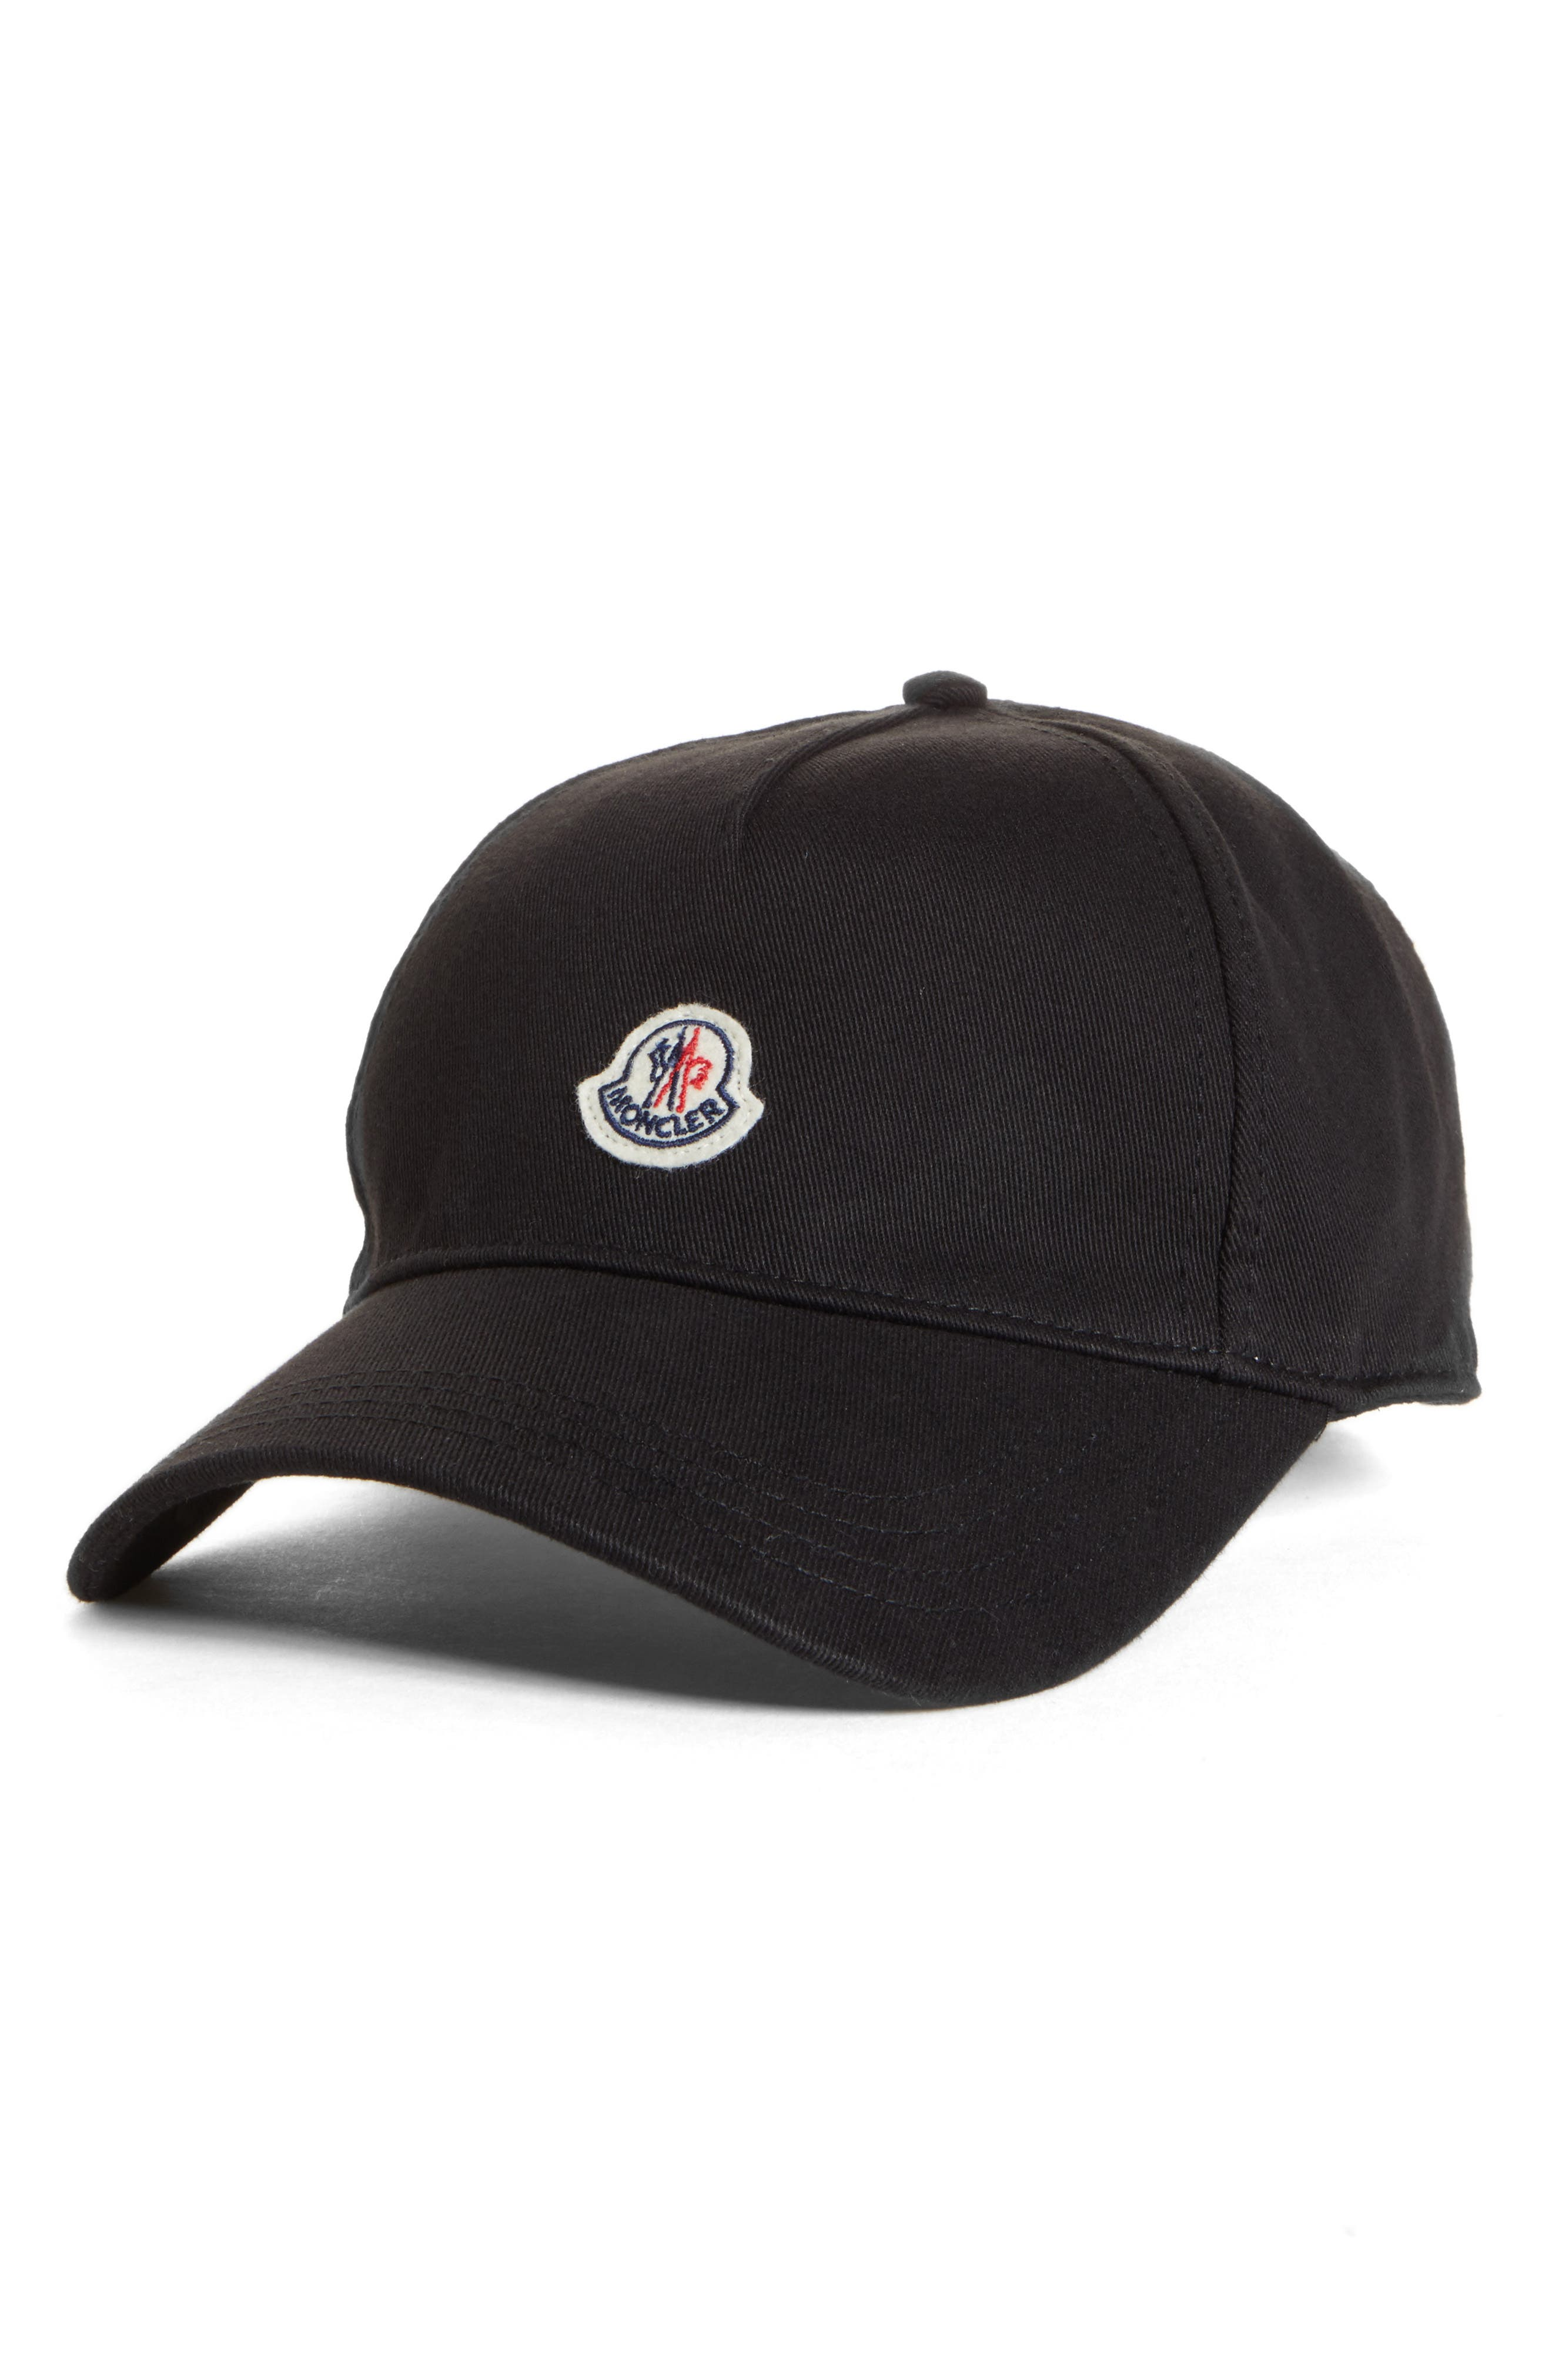 Moncler Logo Patch Baseball Cap - Black In 999 Black  d43385b3eca